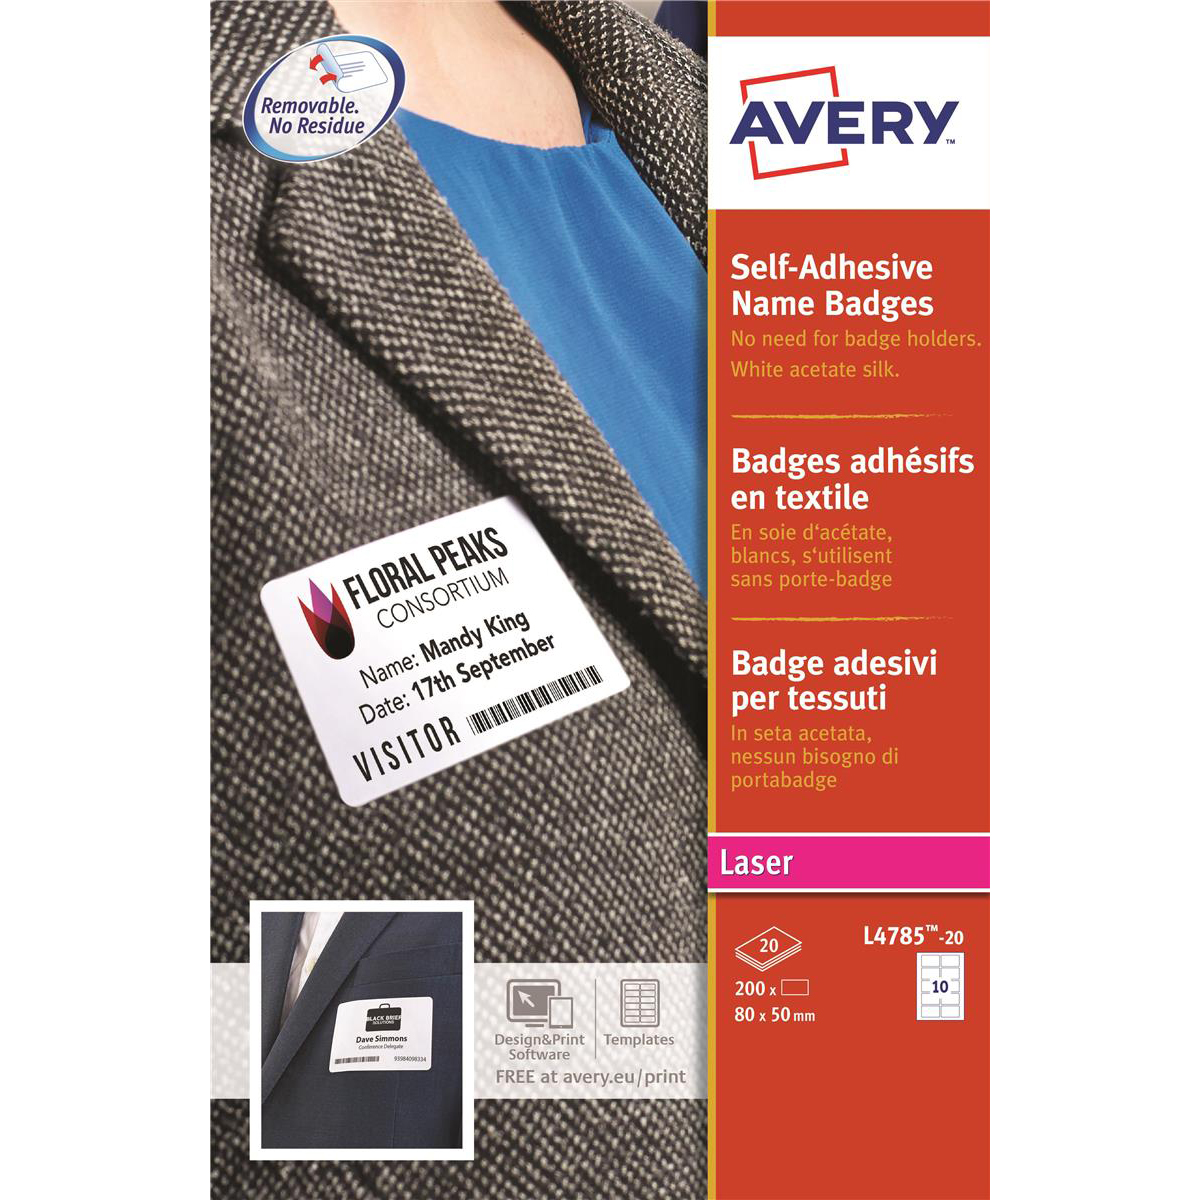 Avery Name Badge Labels Laser Self-adhesive 80x50mm White